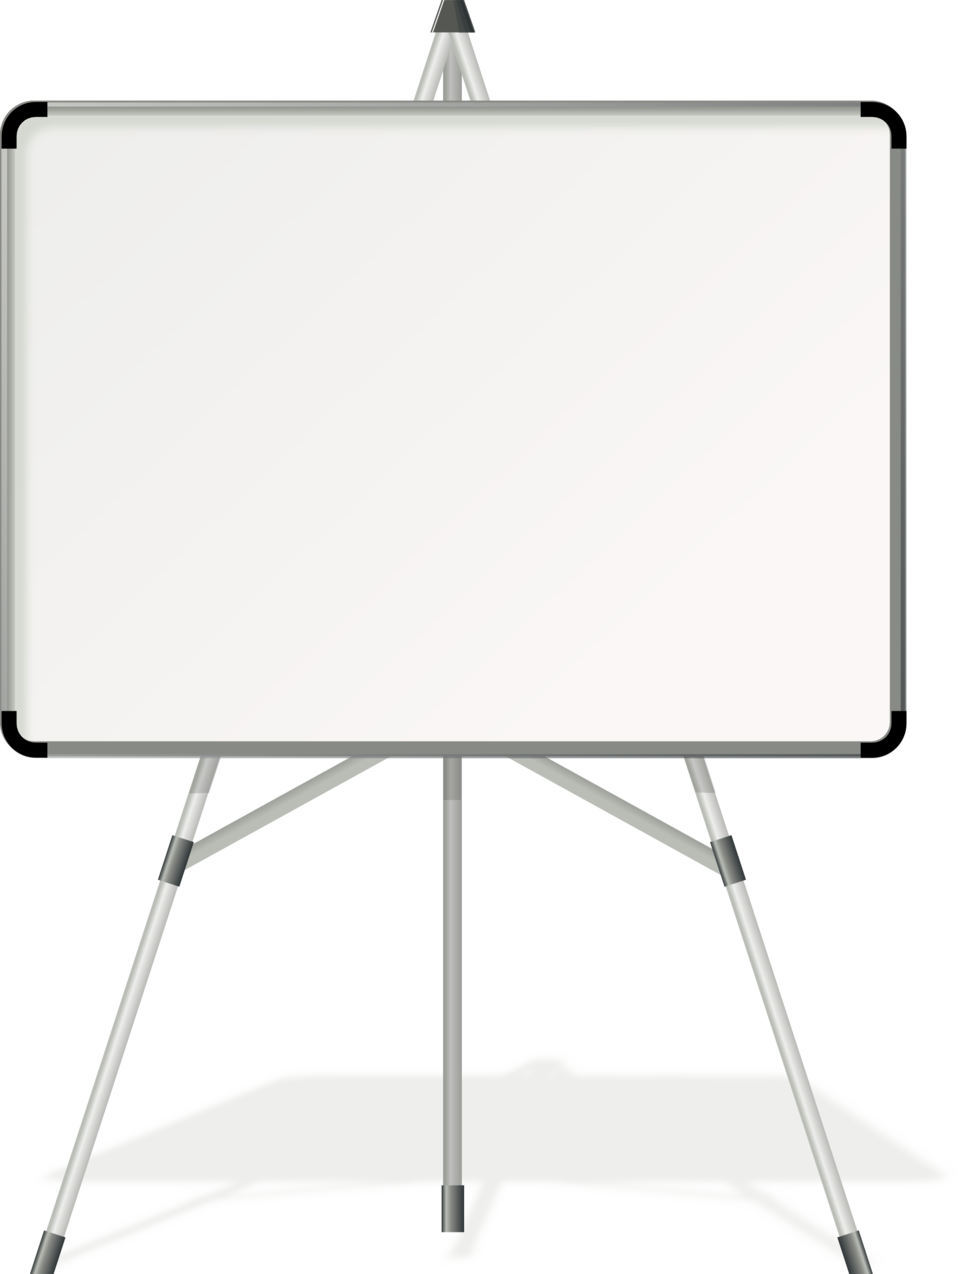 Easel clipart drawing board, Easel drawing board Transparent